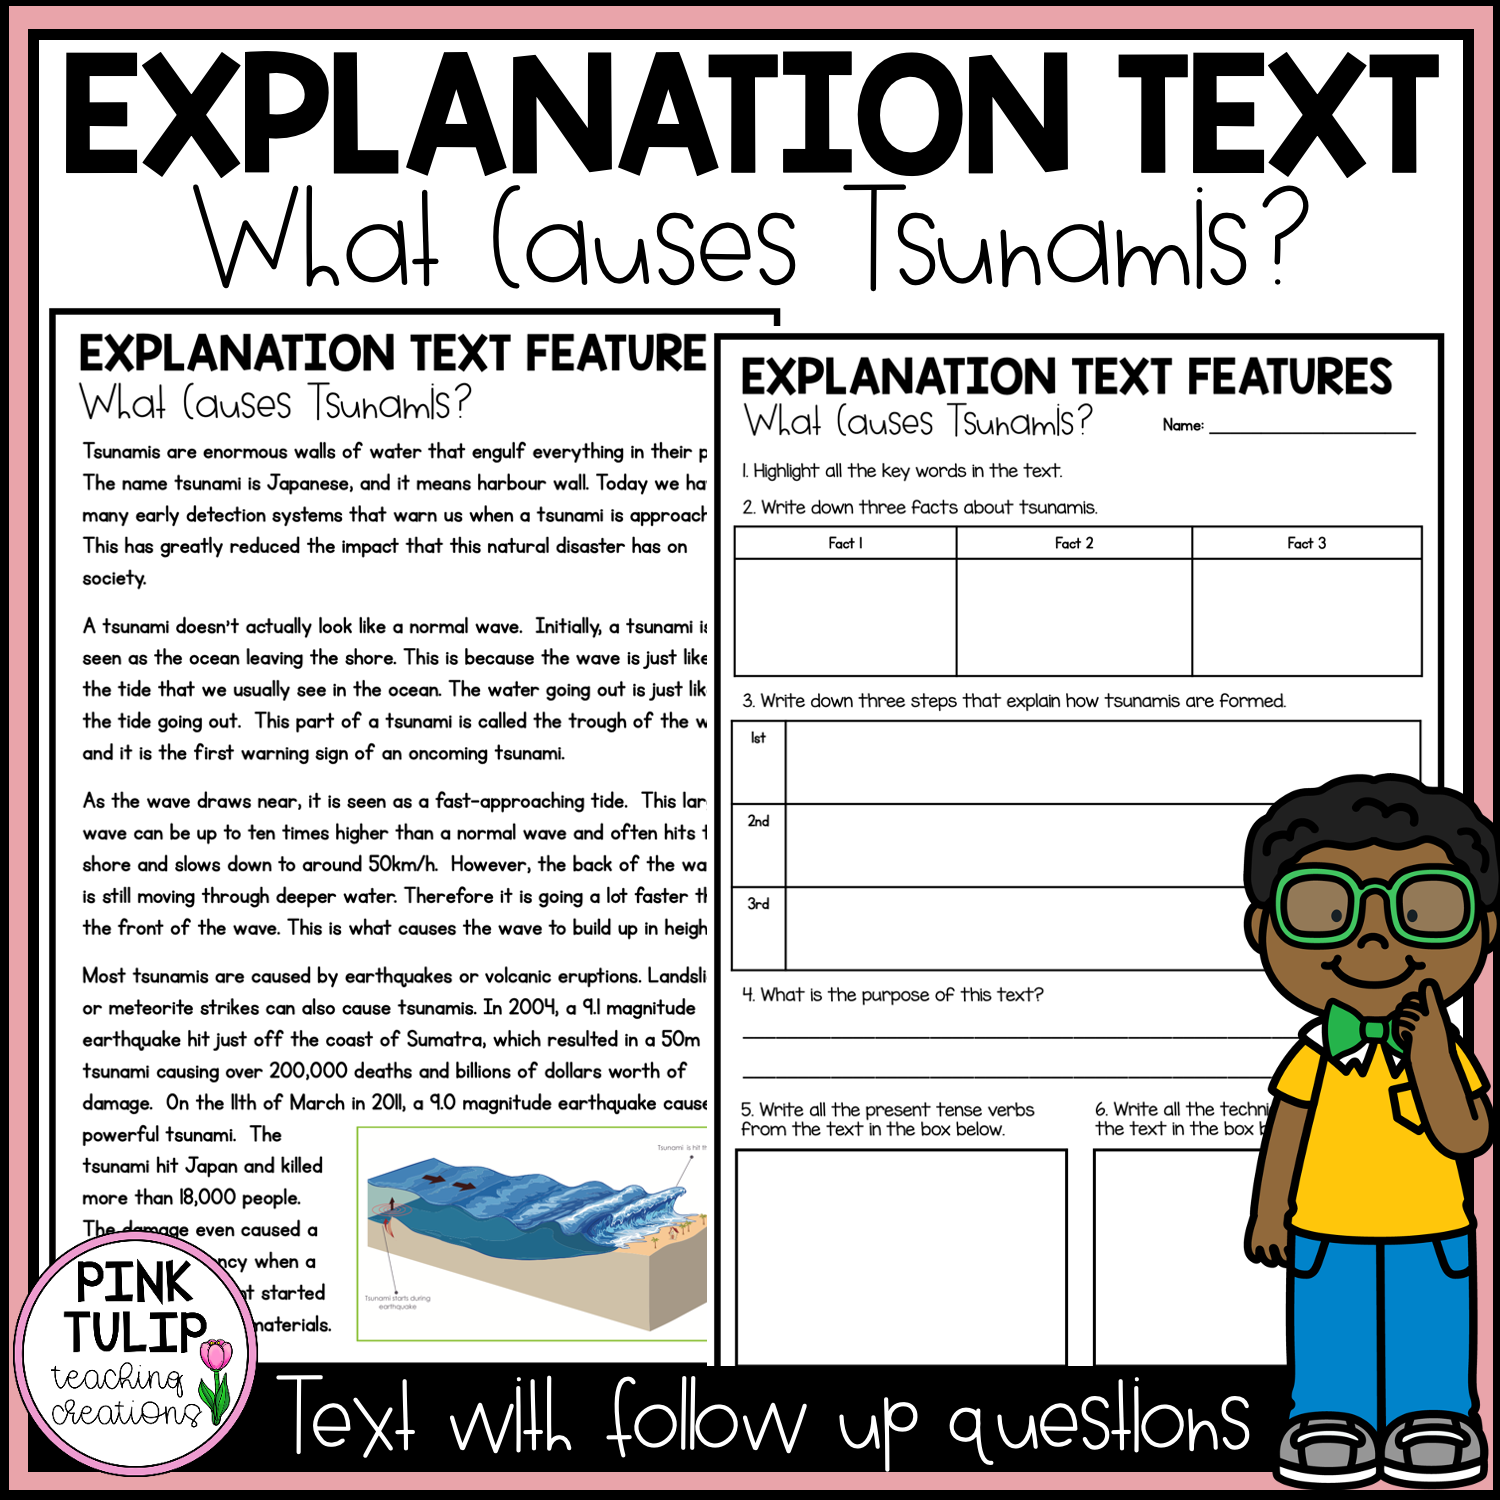 medium resolution of Explanation Text - What Causes Tsunamis?   Explanation text